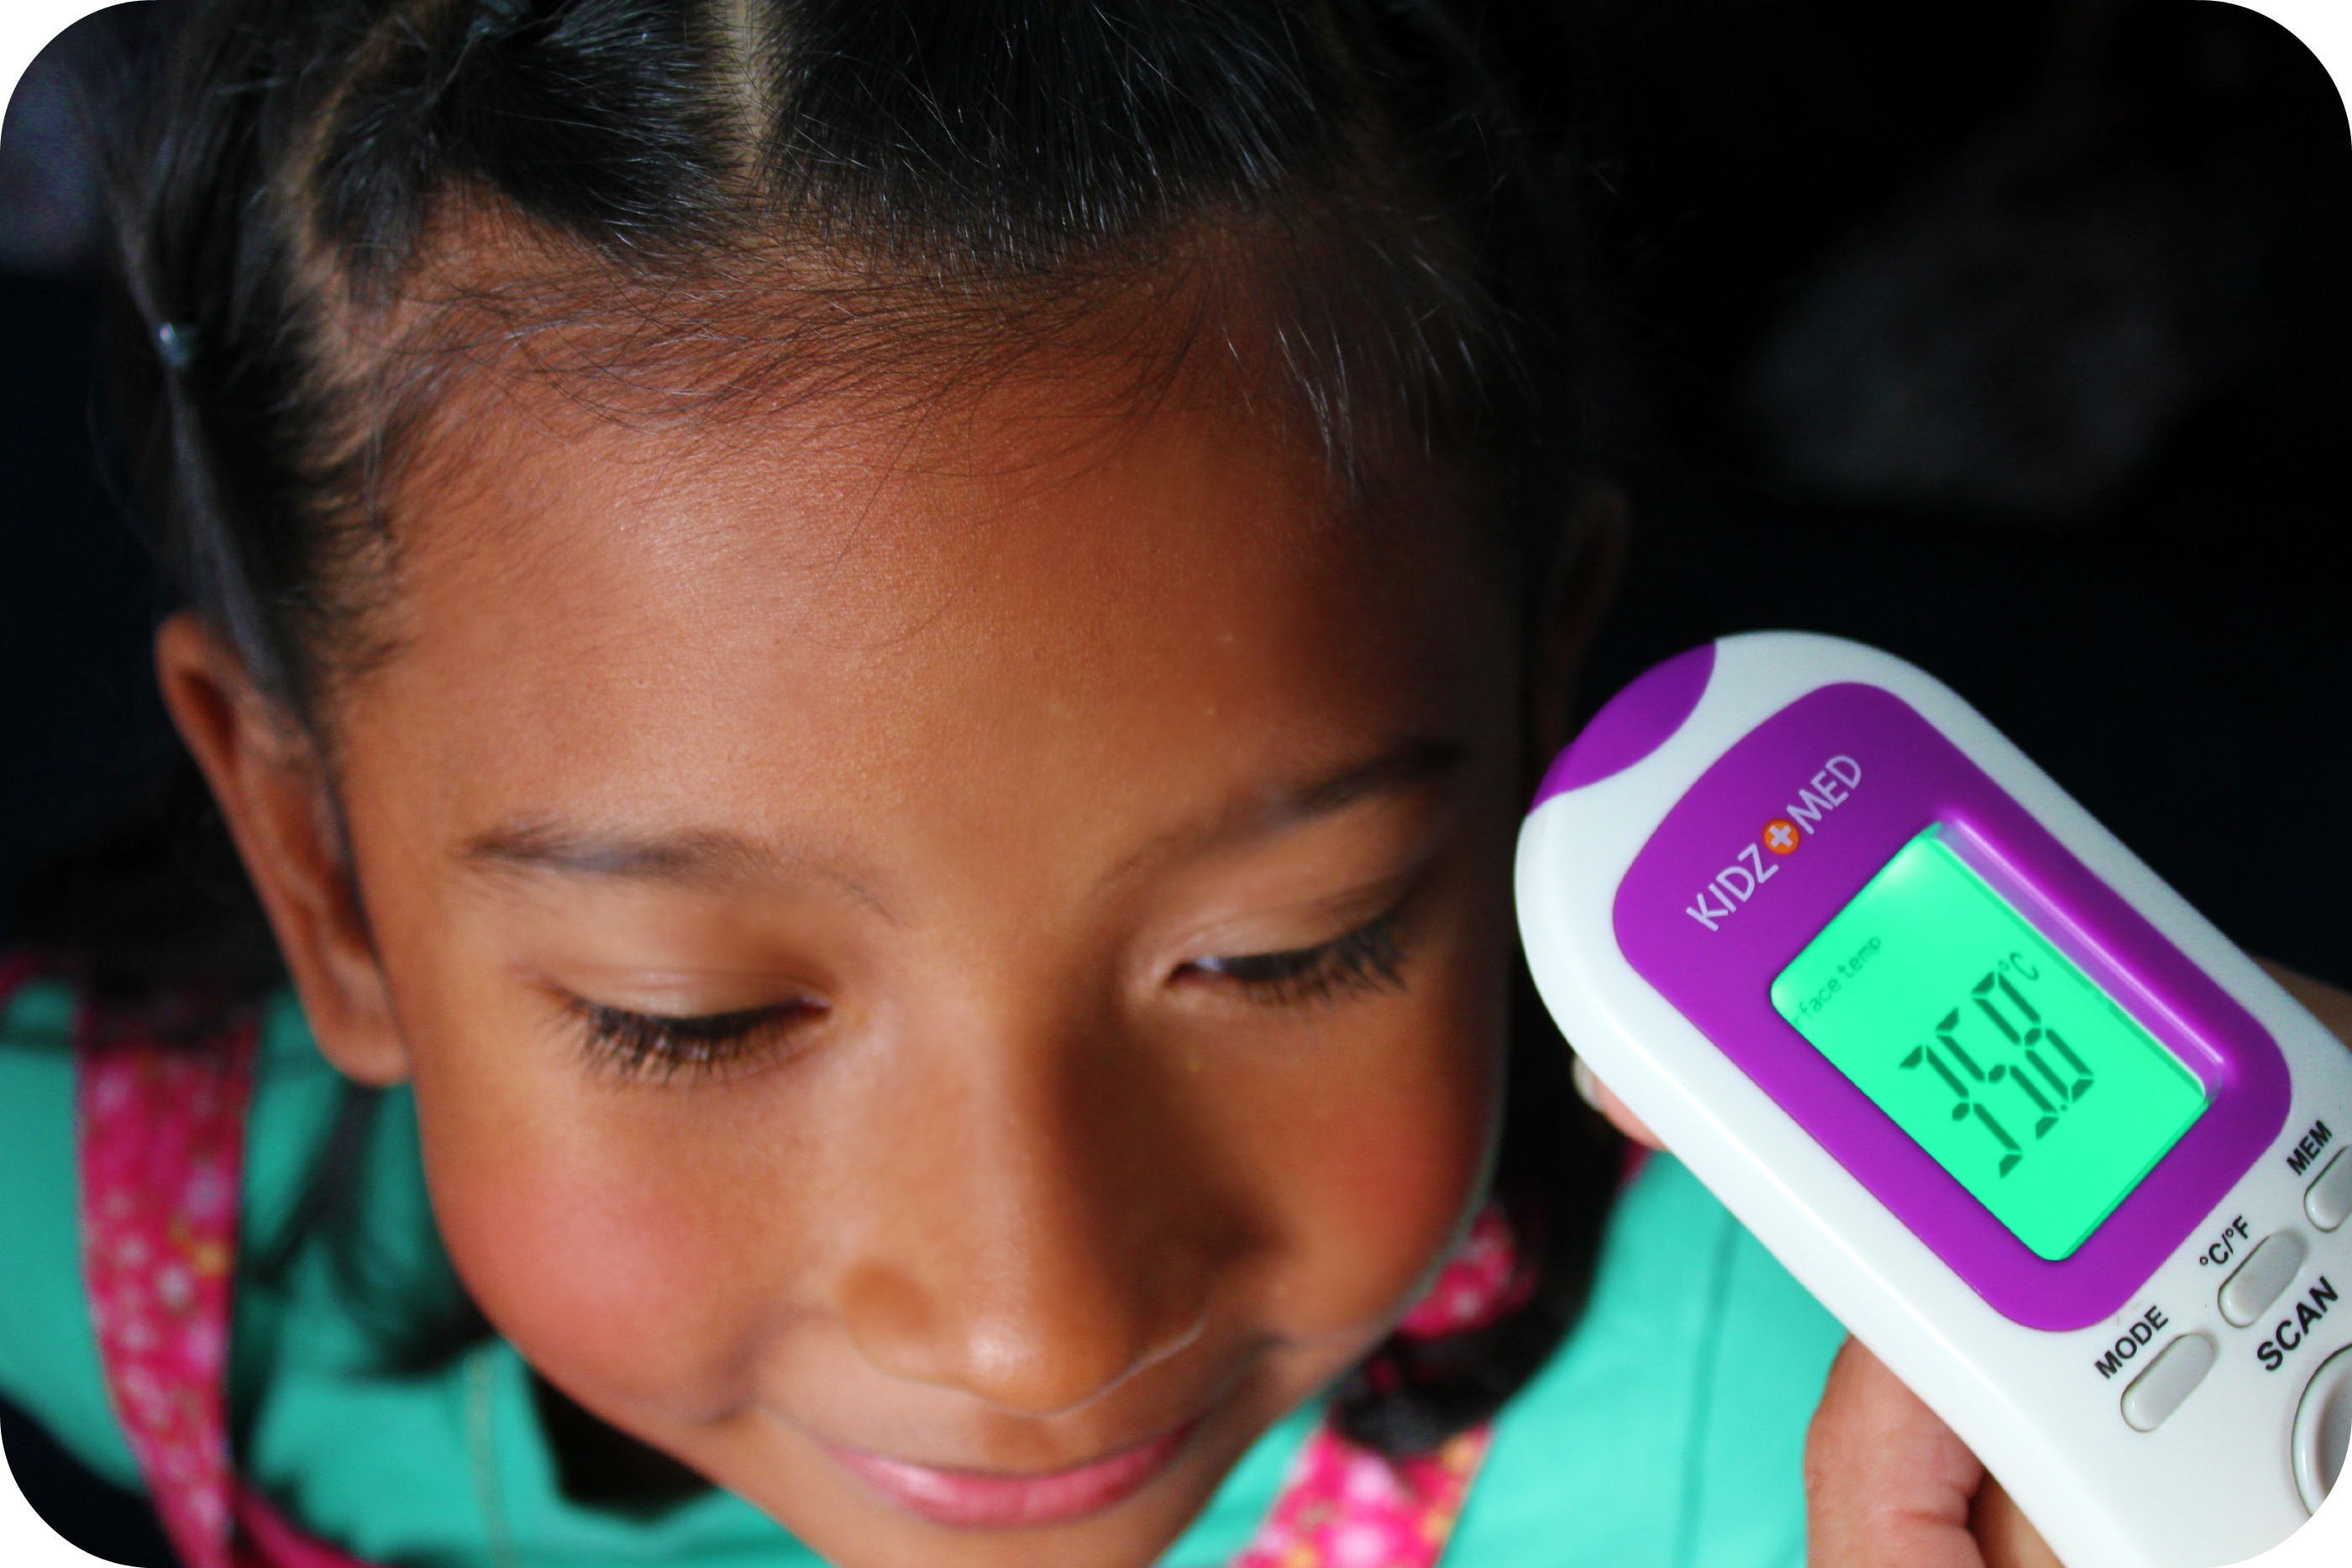 Kidz-Meds VeraTemp Thermometer Review & Giveaway!